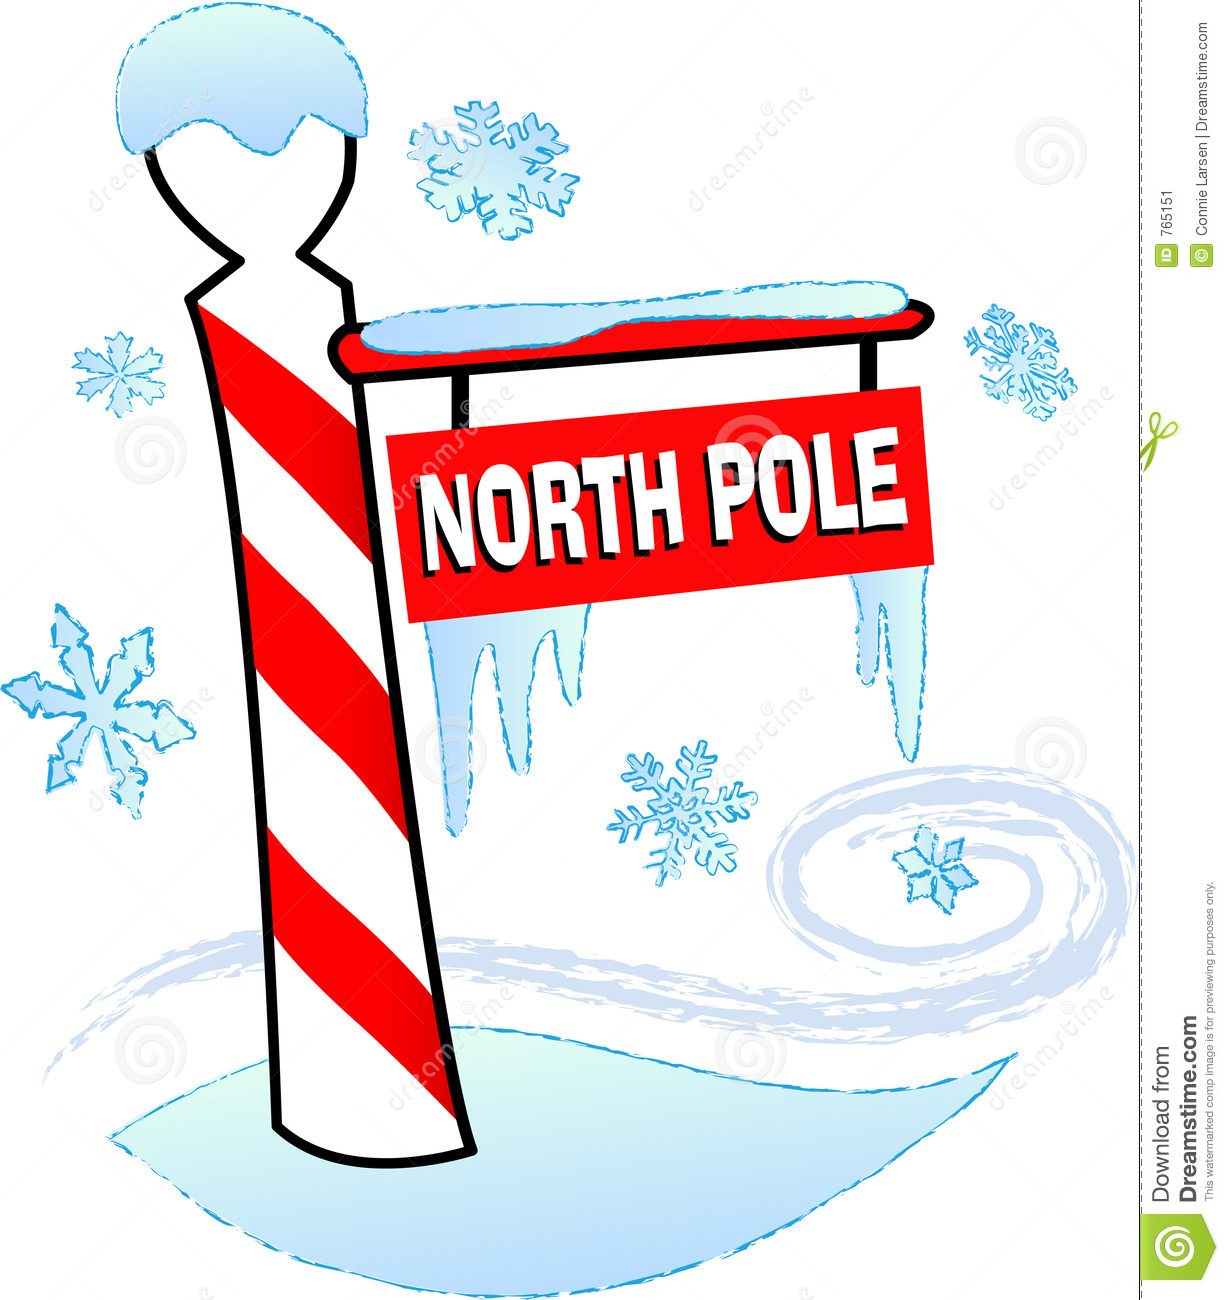 Illustration Of A North Pole Sign Surrou-Illustration Of A North Pole Sign Surrounded By Snow And Ice-2